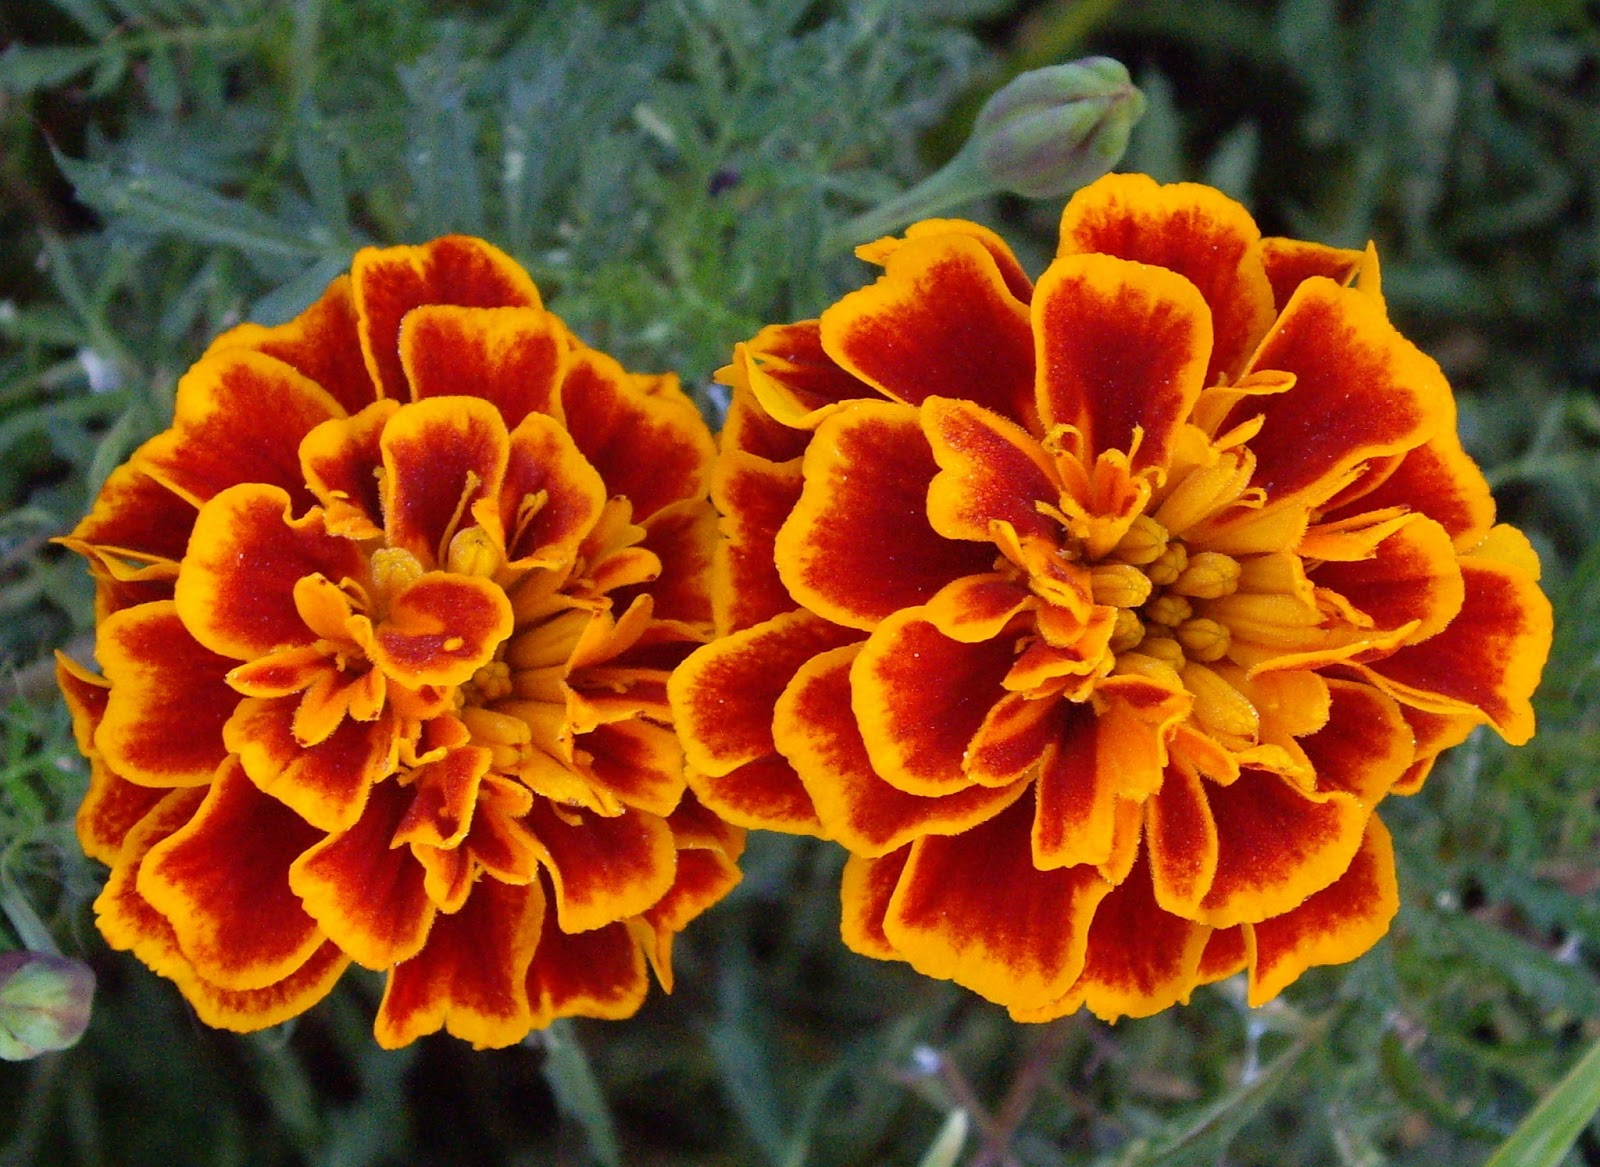 Marigold+Flowers+Wallpaper